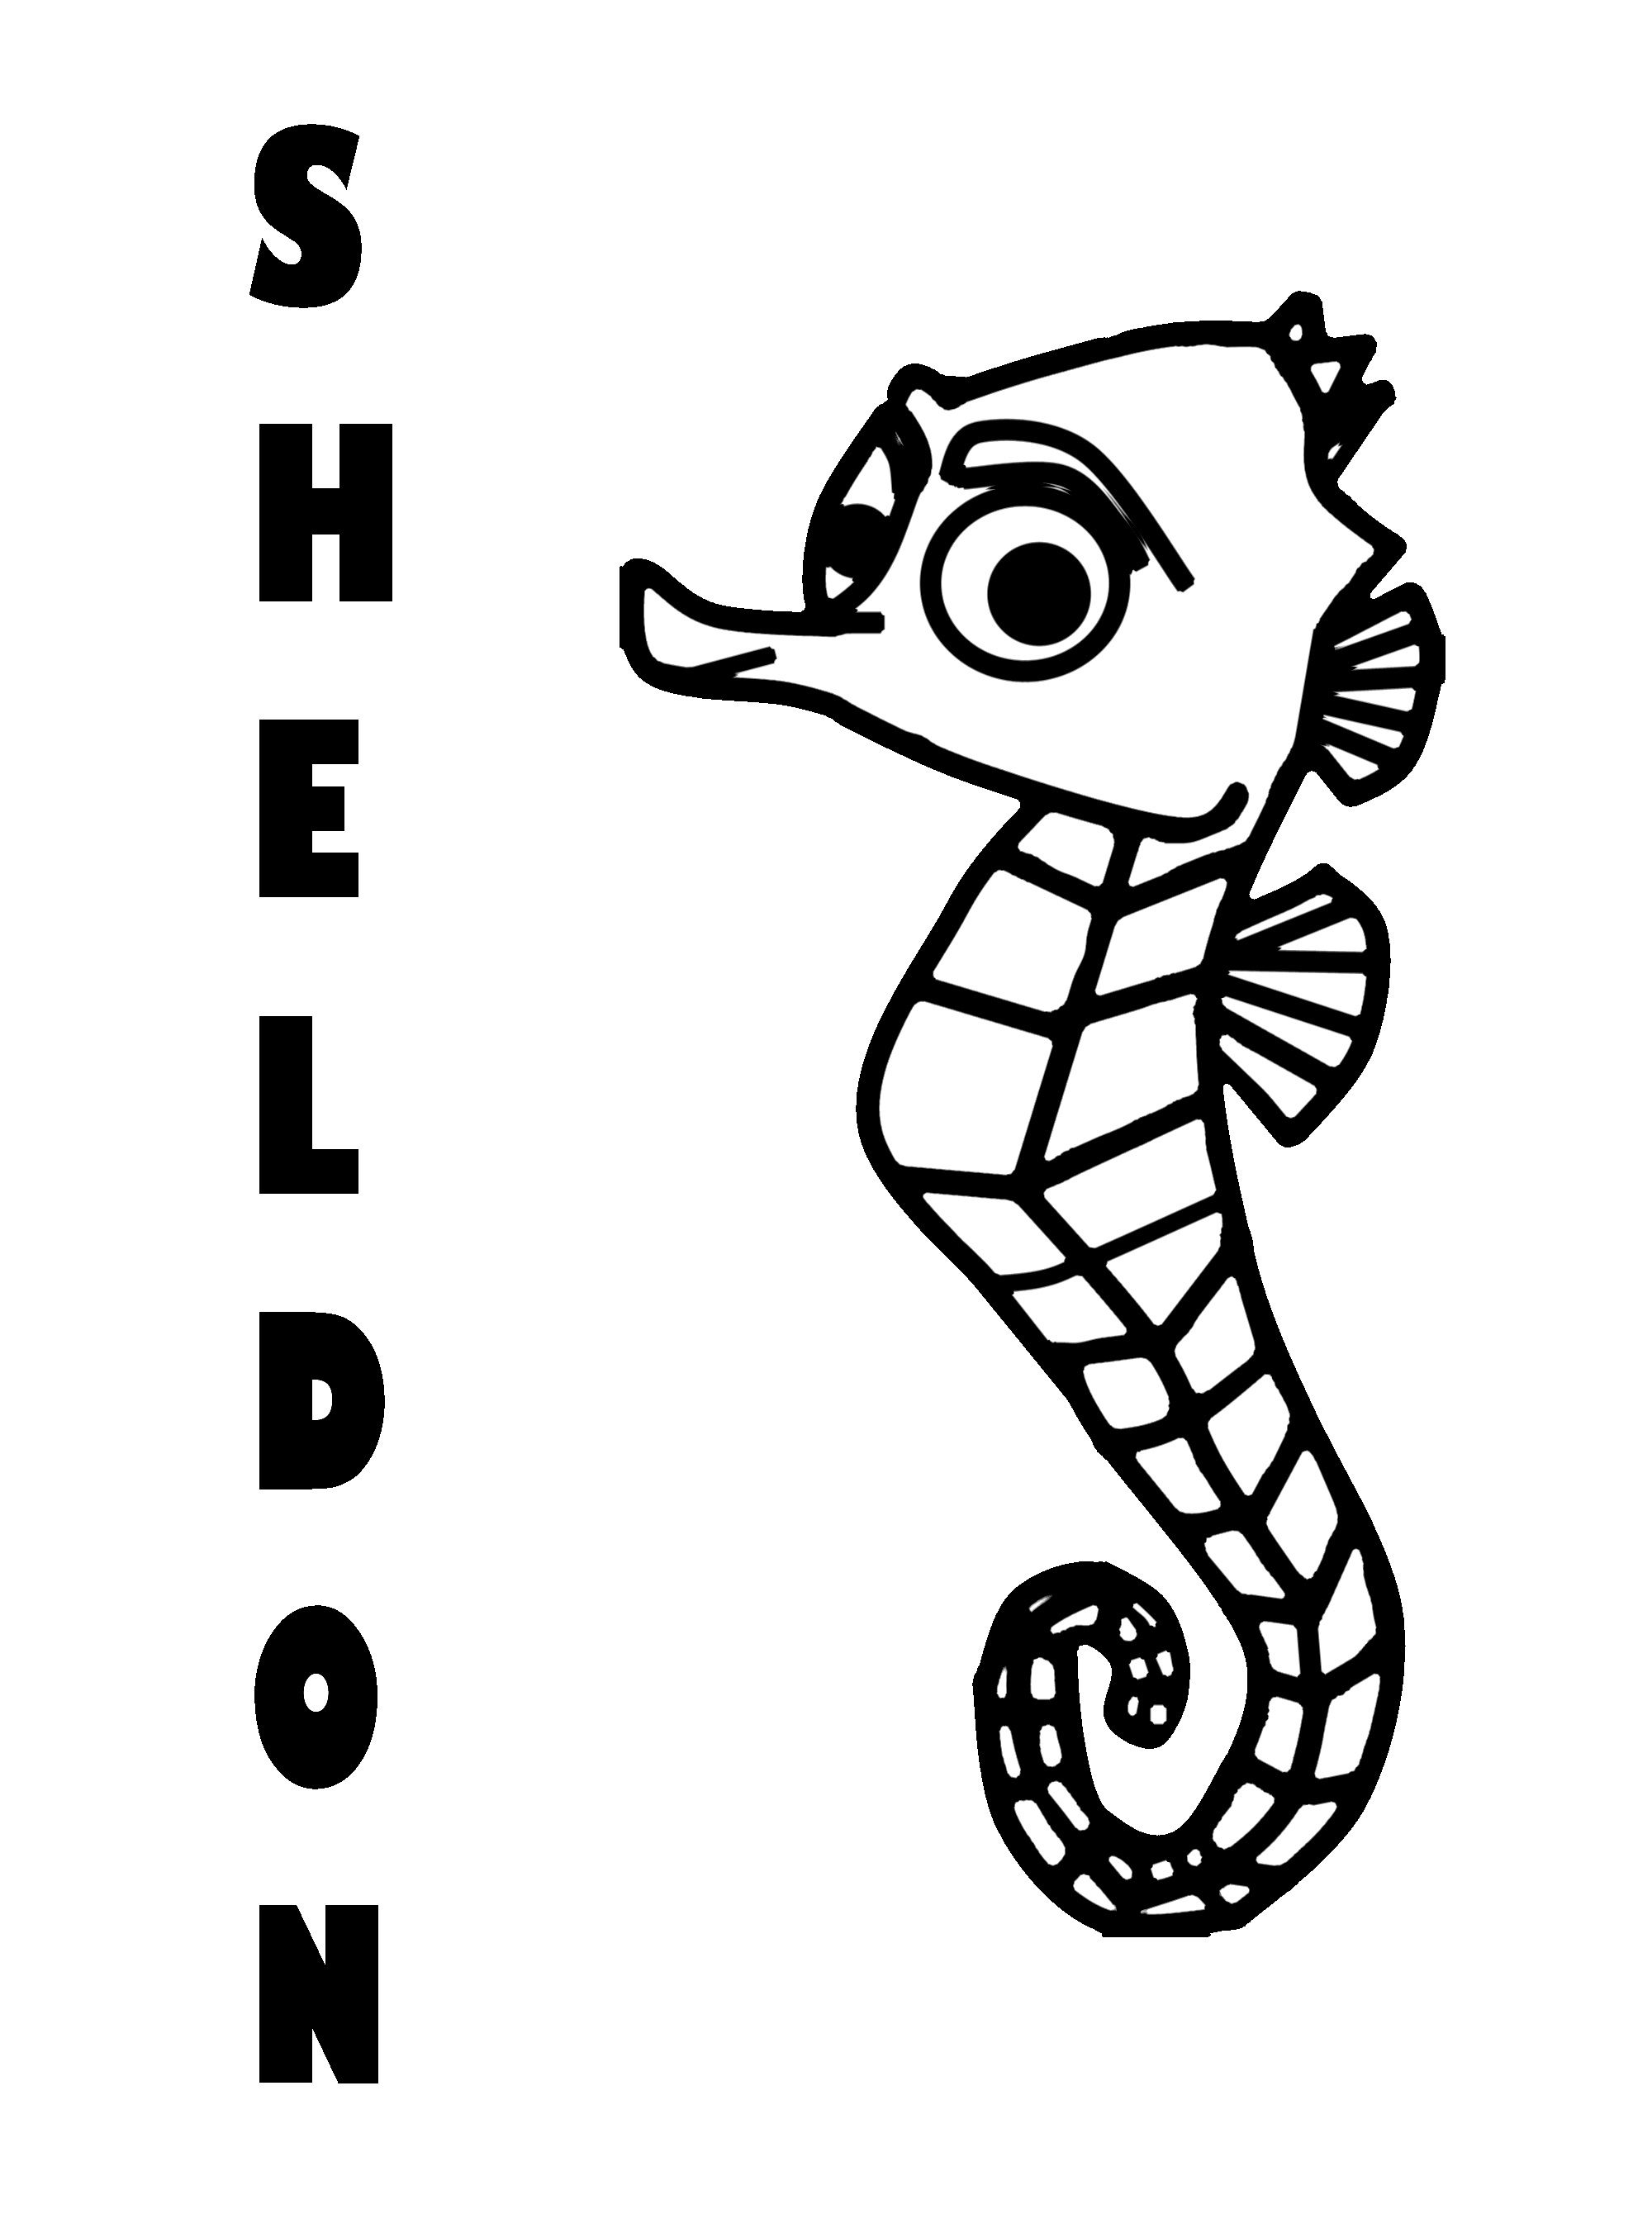 Sheldon Nemo Coloring Pages Finding Nemo Coloring Pages